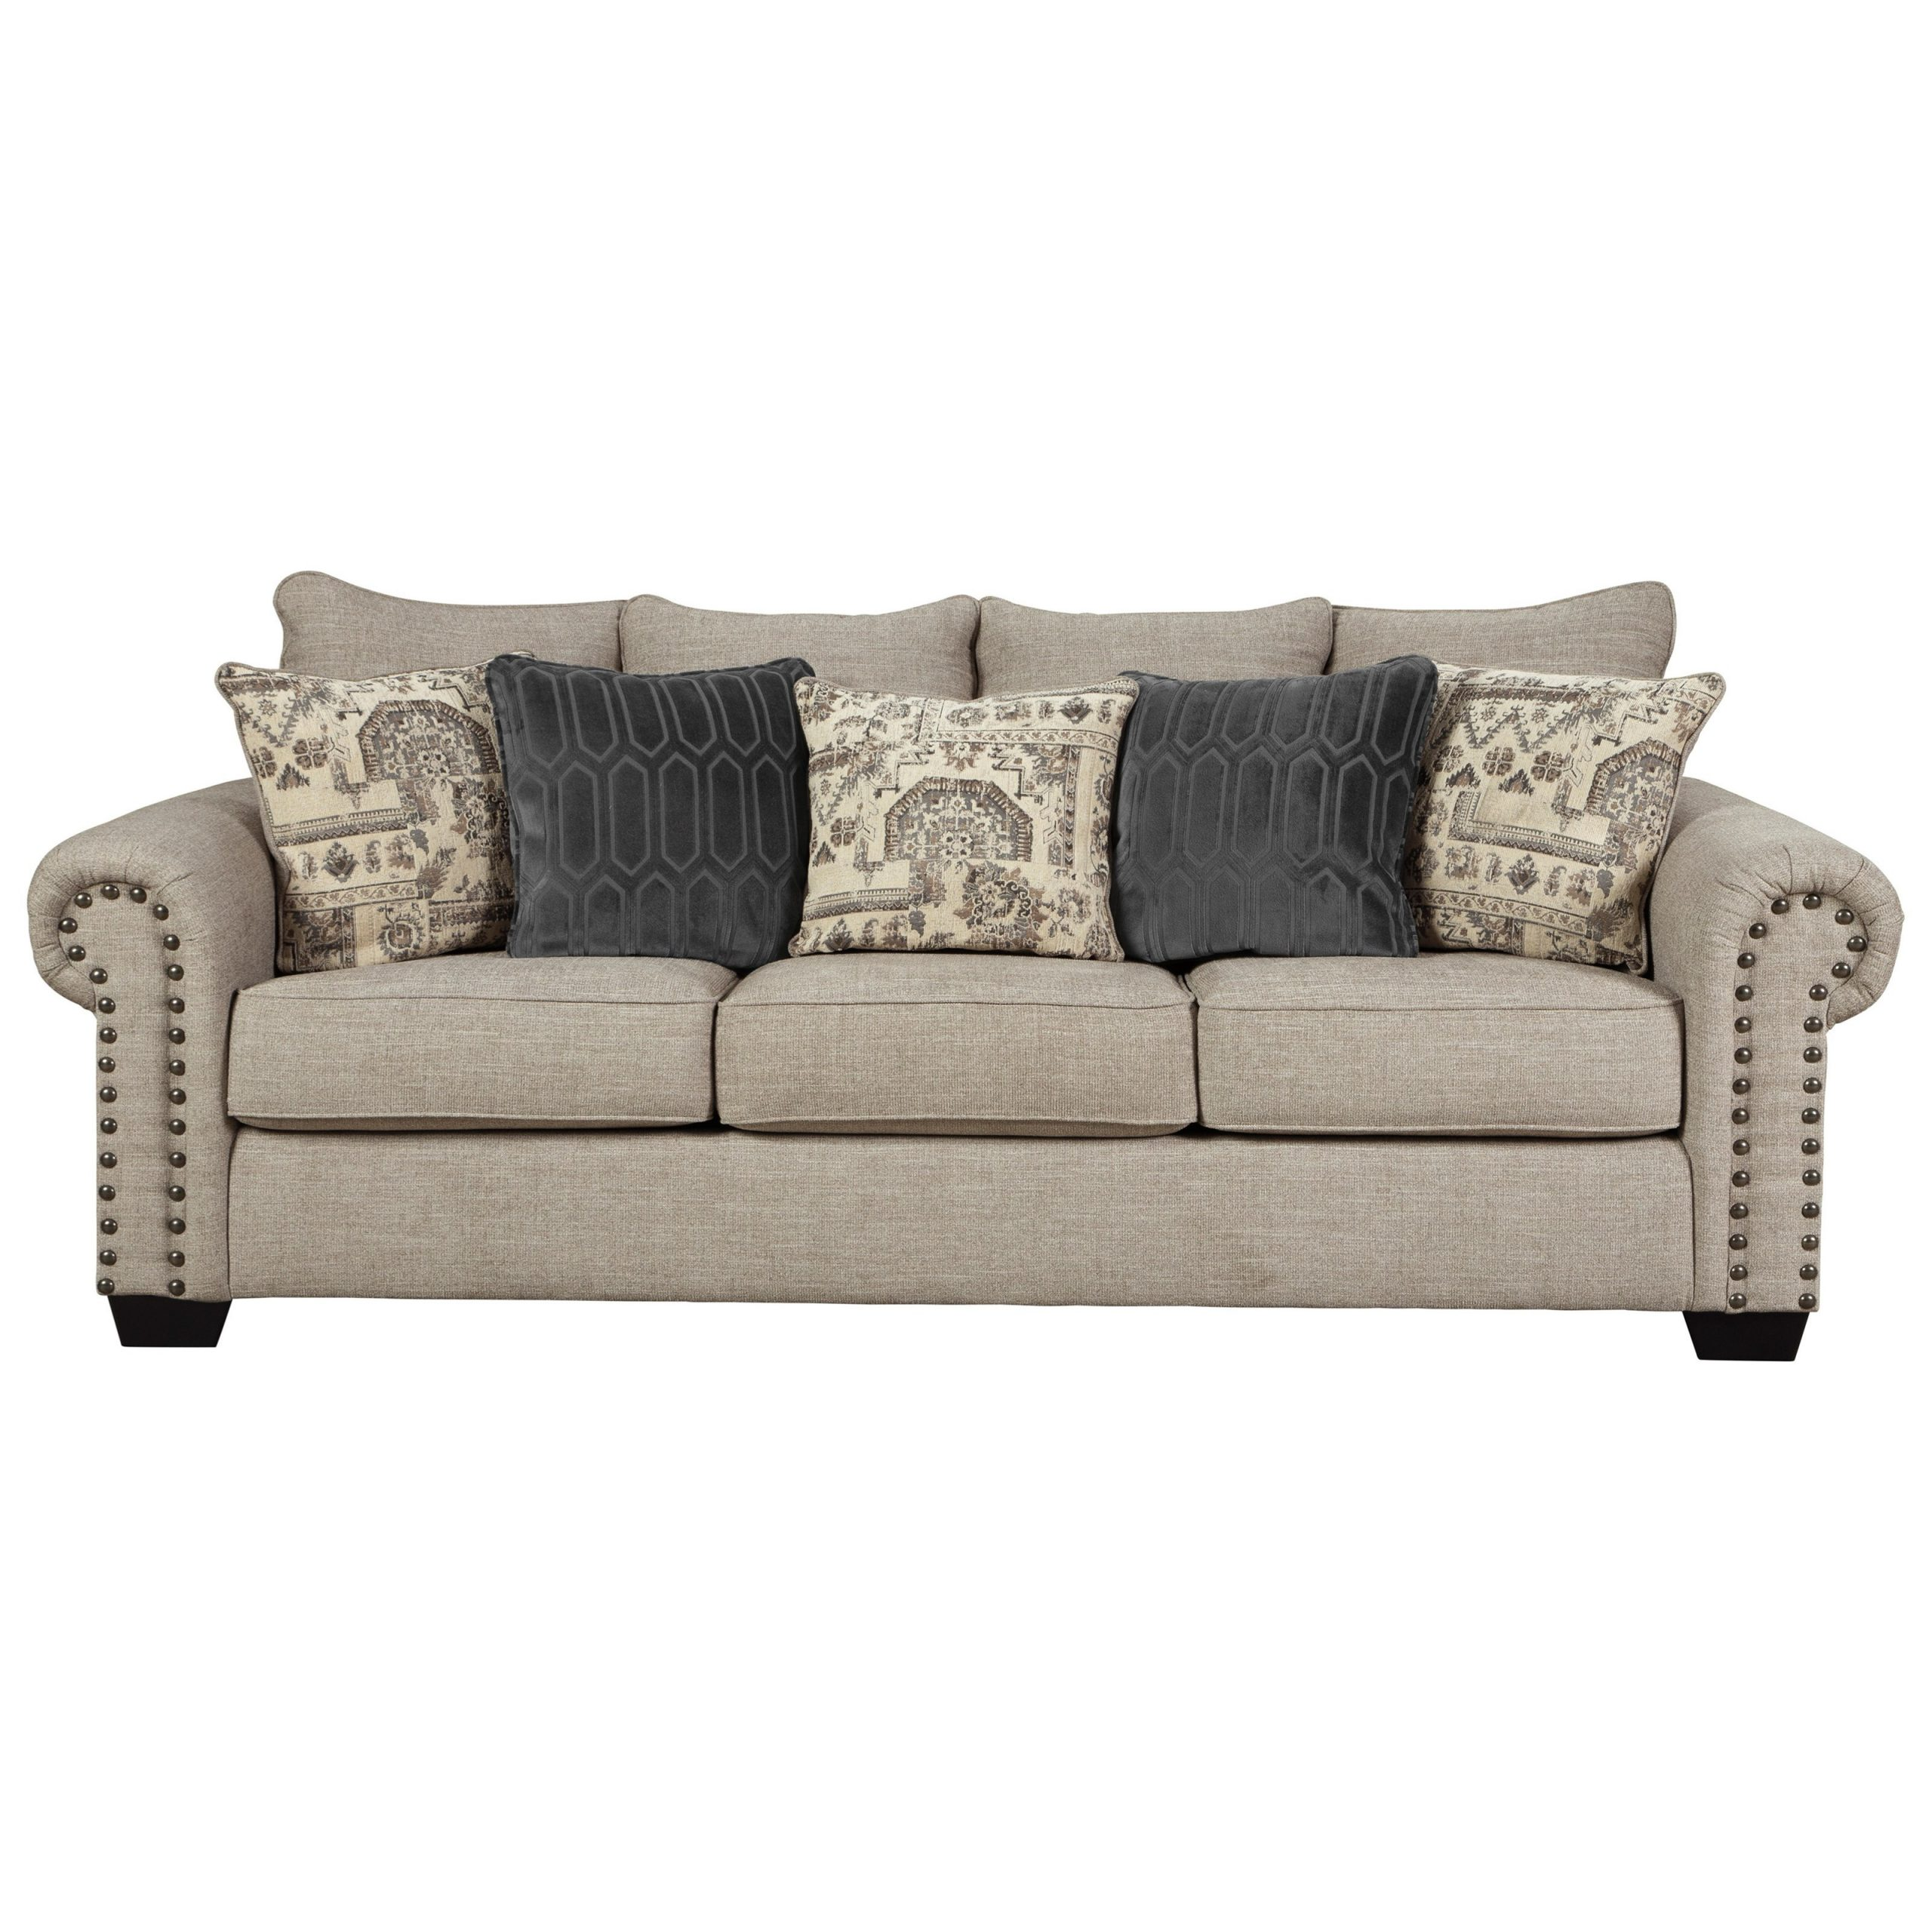 2Pc Polyfiber Sectional Sofas With Nailhead Trims Gray In Latest Signature Designashley Zarina 9770438 Transitional (View 4 of 25)